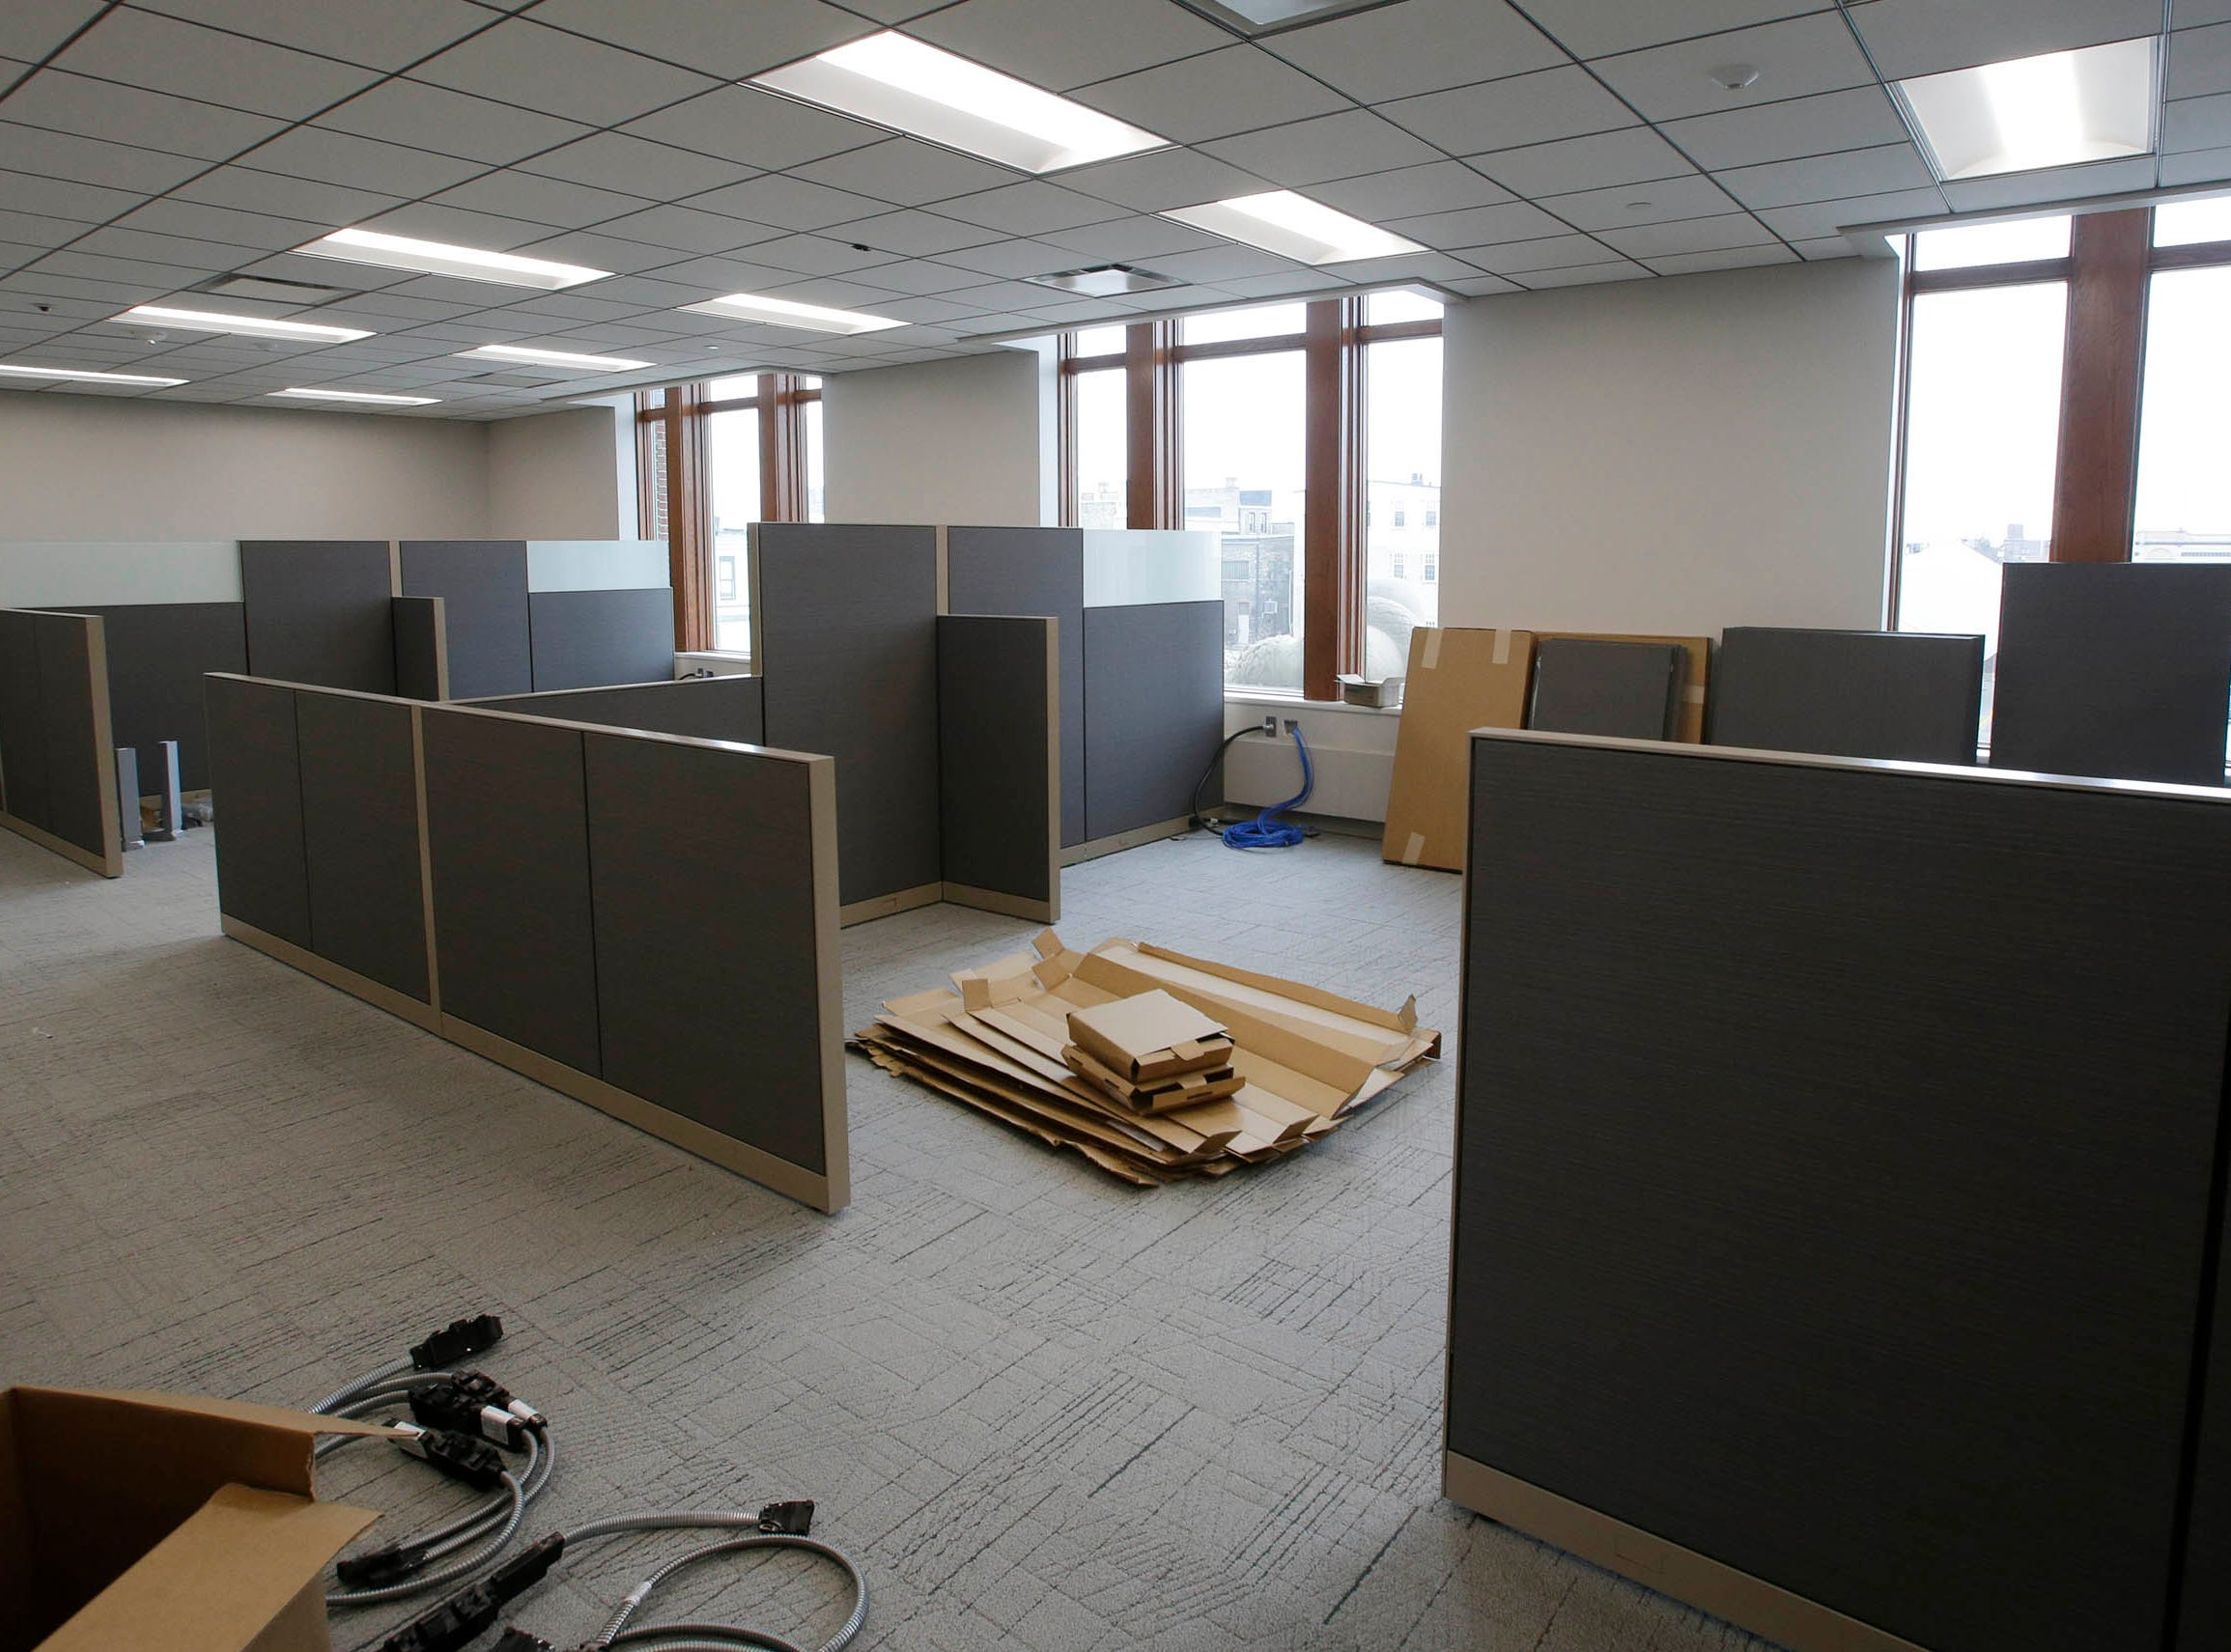 The office partitions are being assembled for the building inspection department, Tuesday, May 7, 2019, in Sheboygan, Wis.